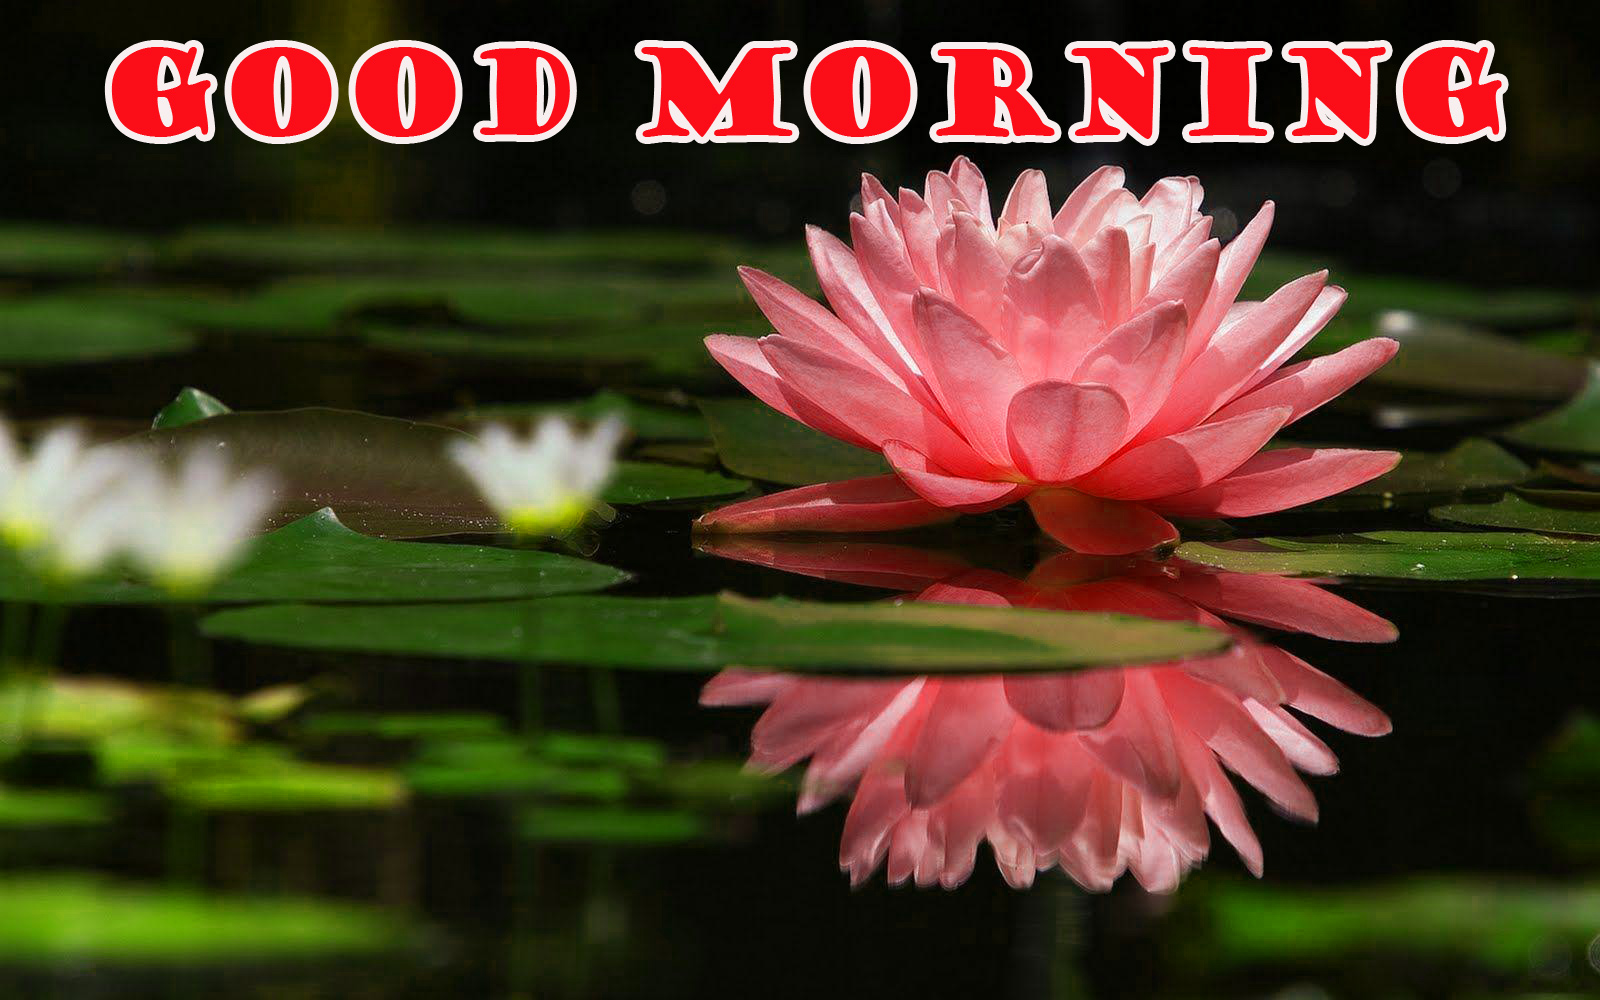 Good Morning Flowers Pictures Images Photo Wallpaper Download